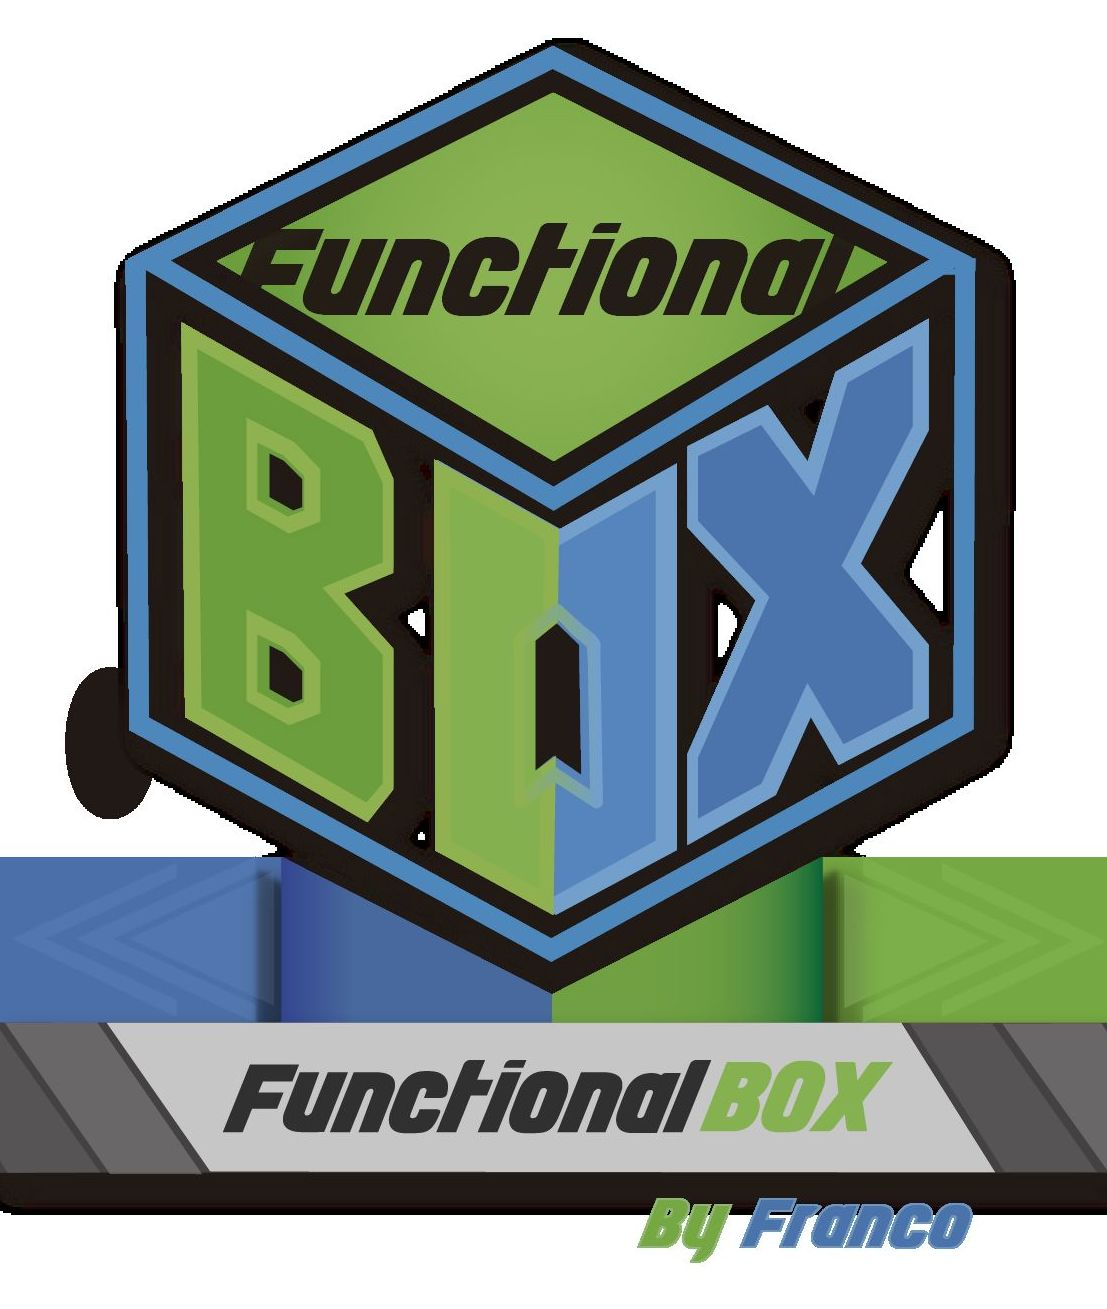 Functional Box by FRanco